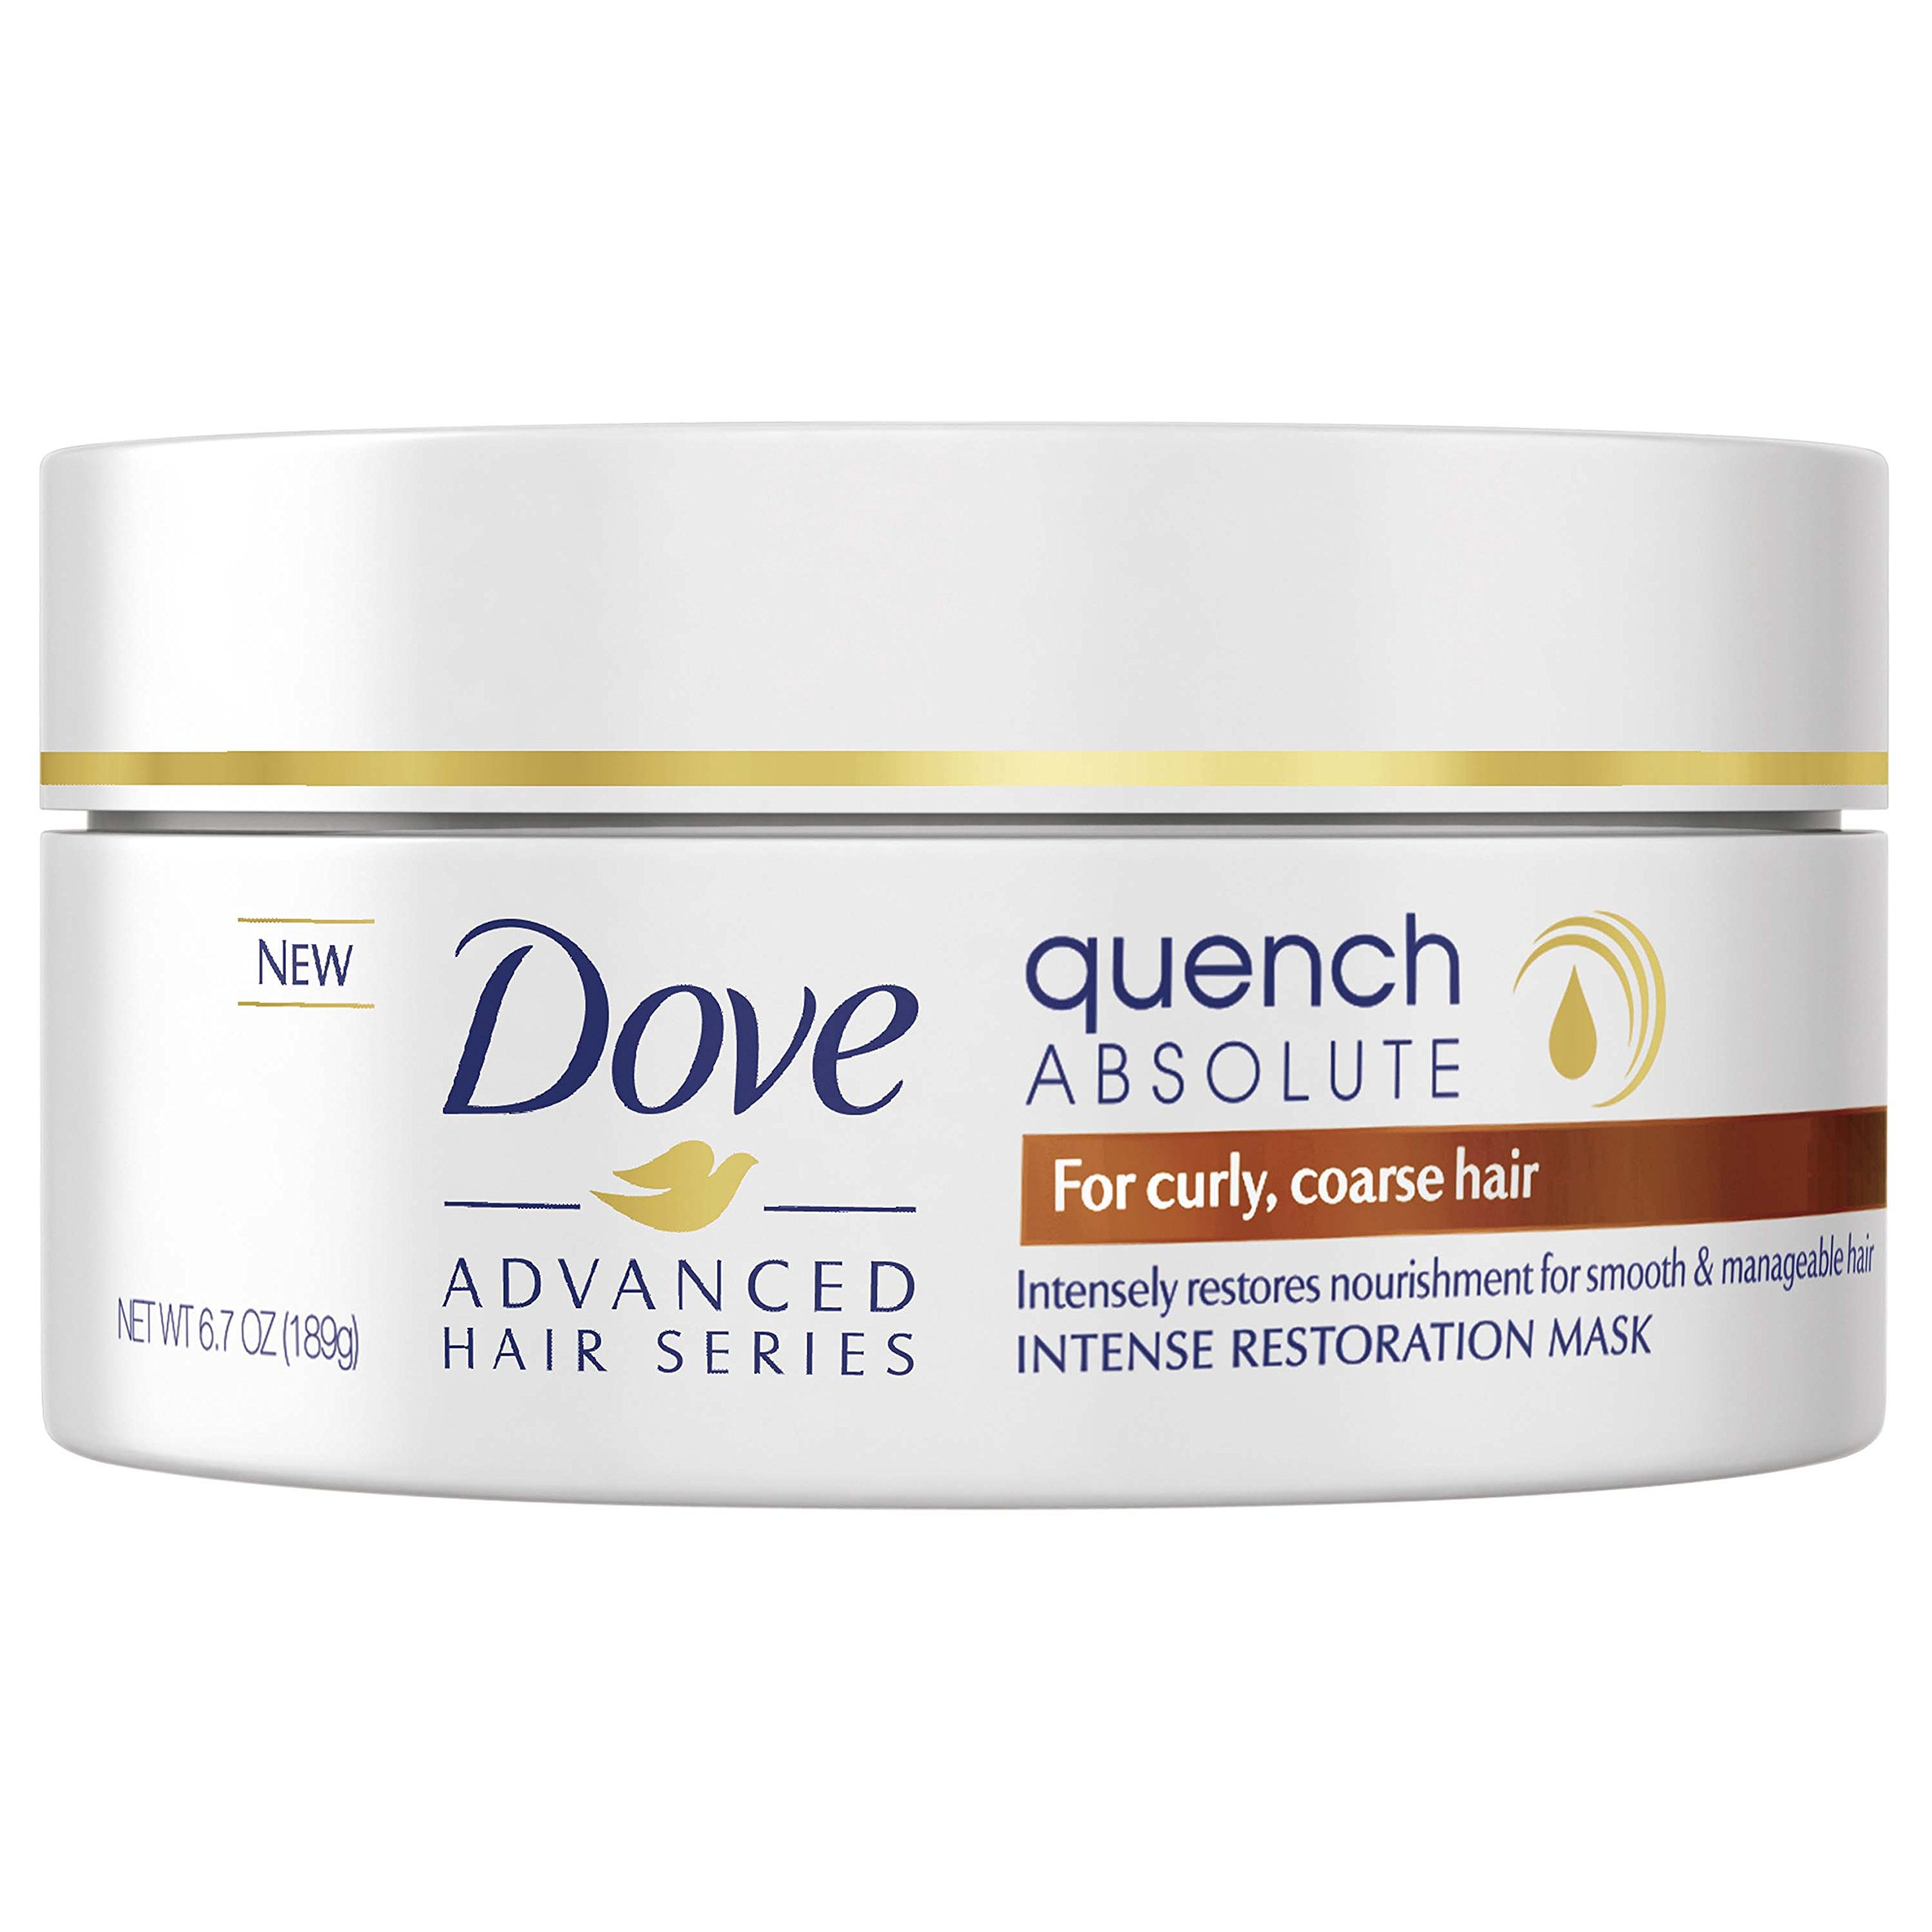 Dove Advanced Hair Series Intense Restoration Mask, Quench Absolute 6.7 oz